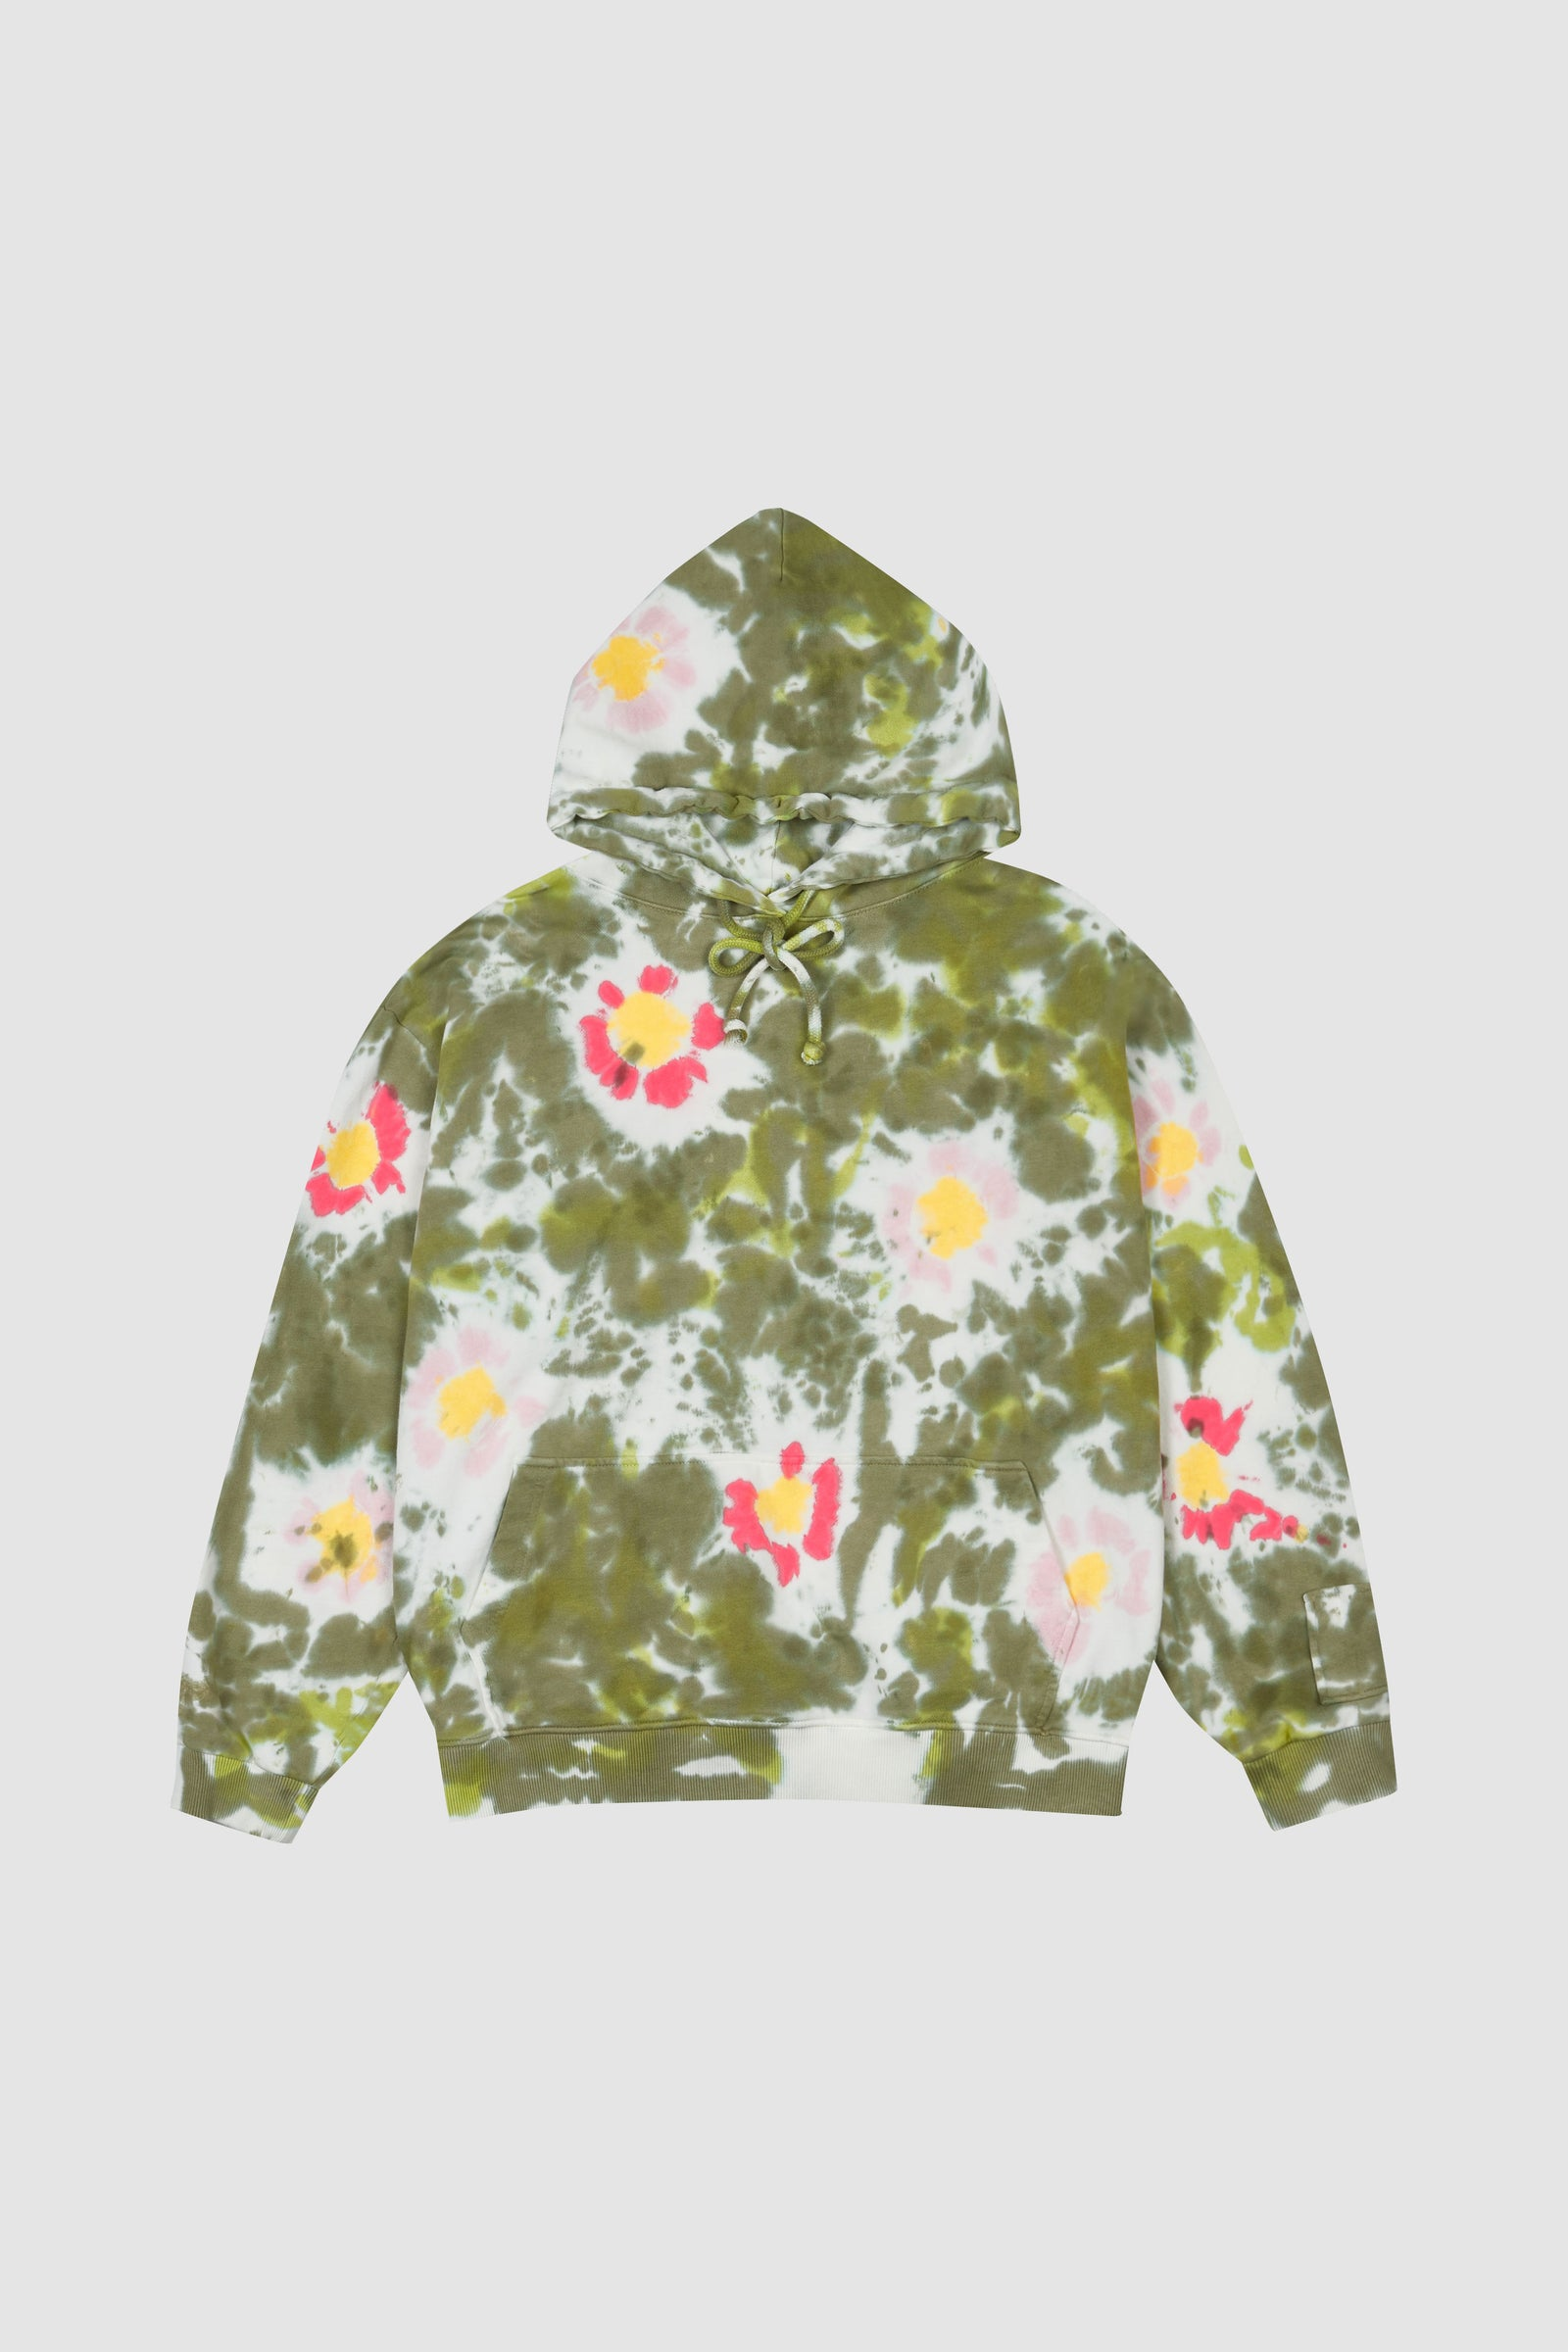 Photo of Cherry Blossom Tie-Dye Hoodie, number 2